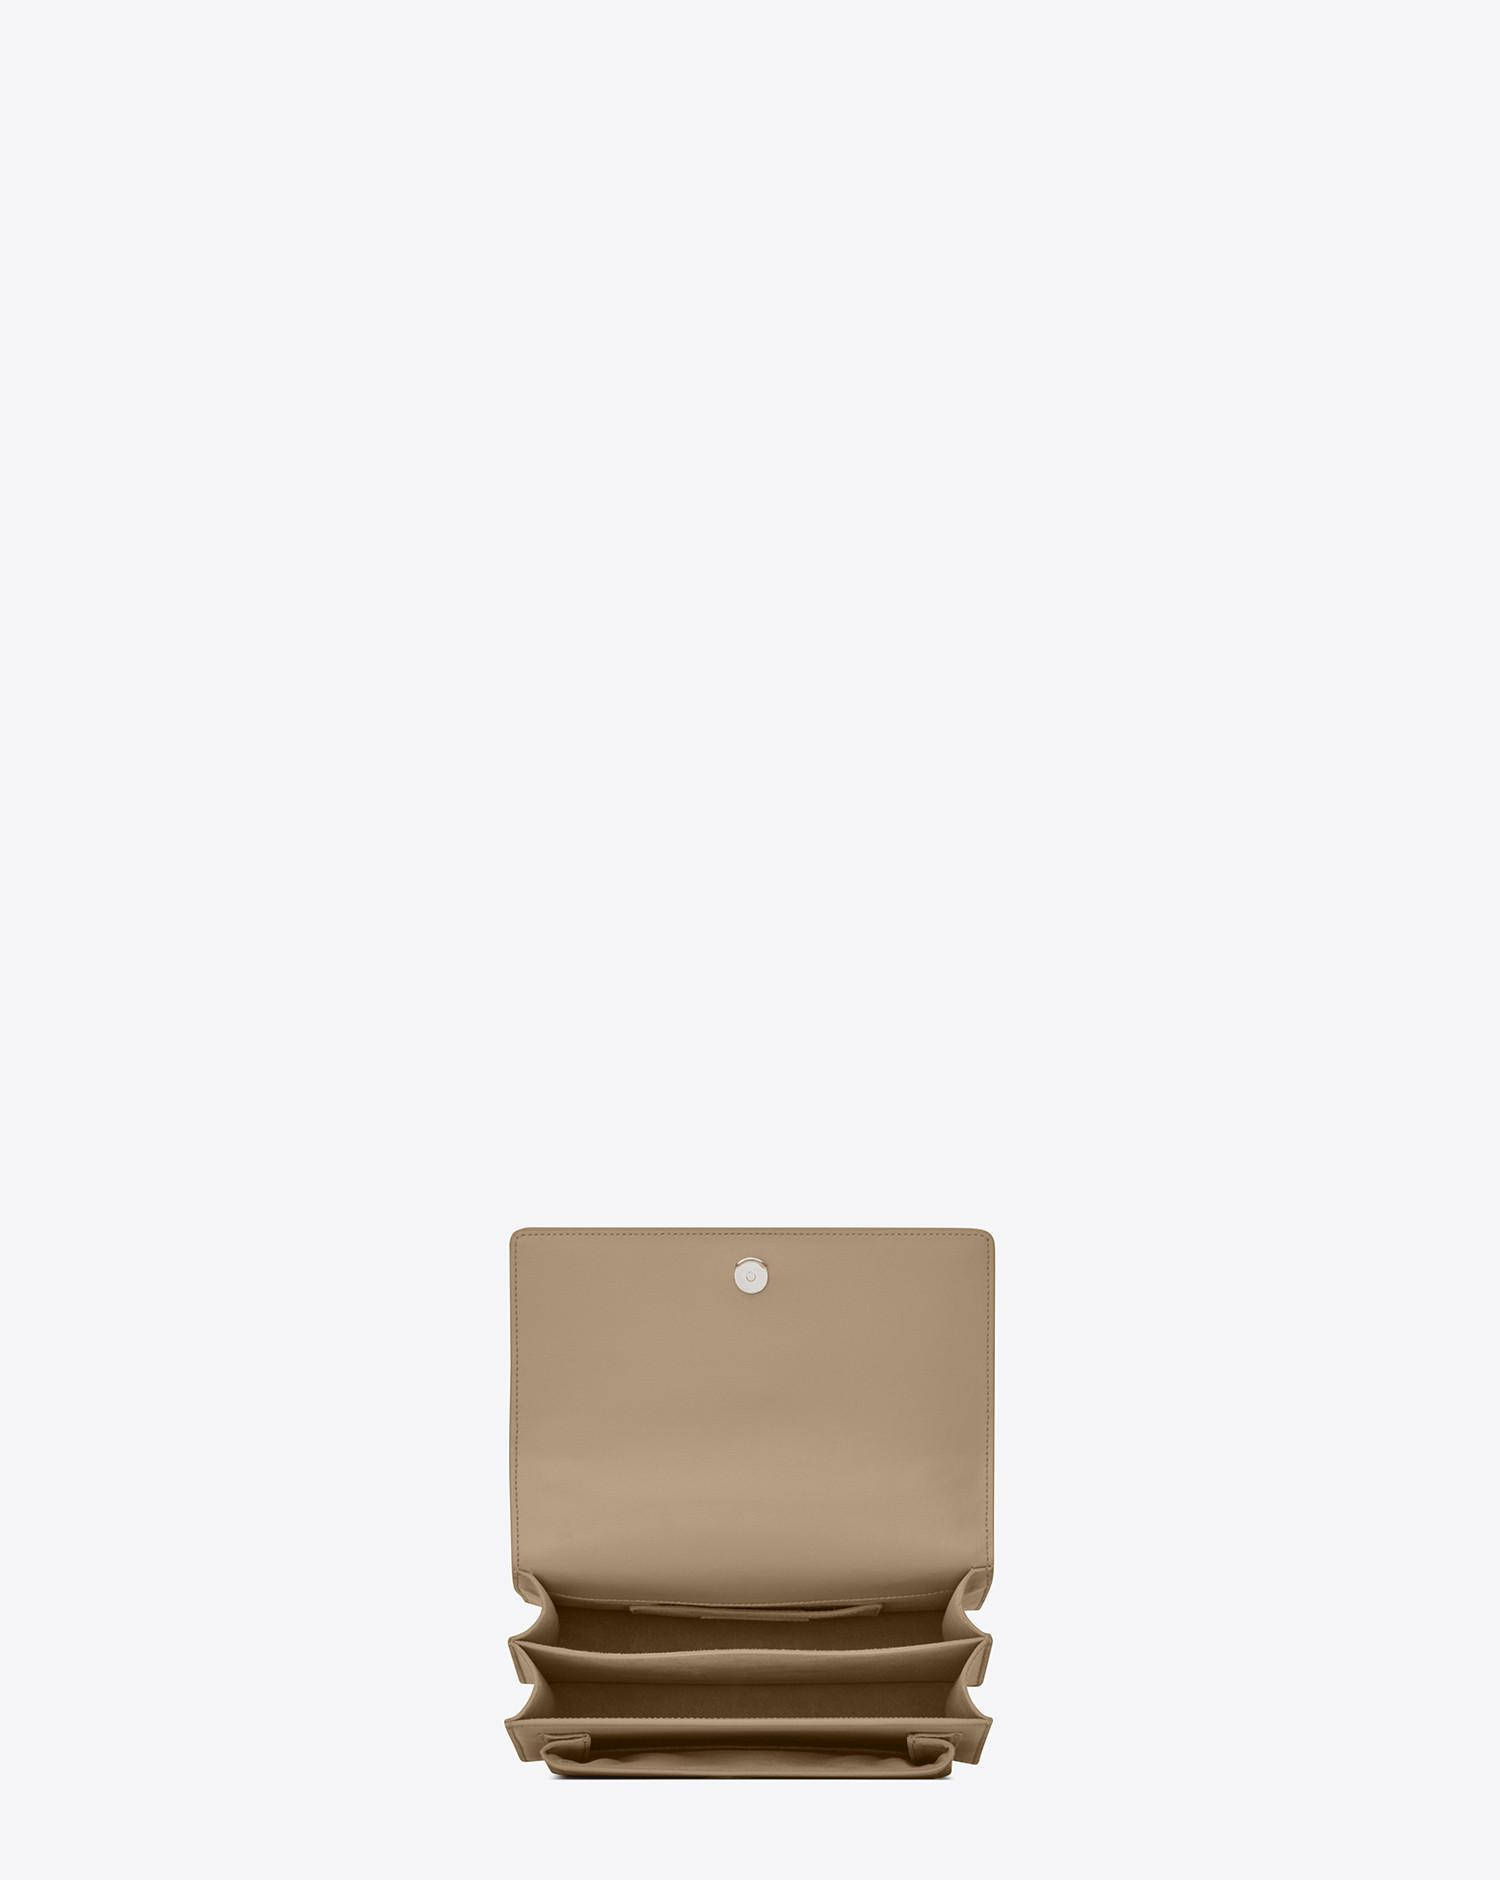 Lyst - Saint Laurent Sunset Medium In Smooth Leather in Natural 86257a308b